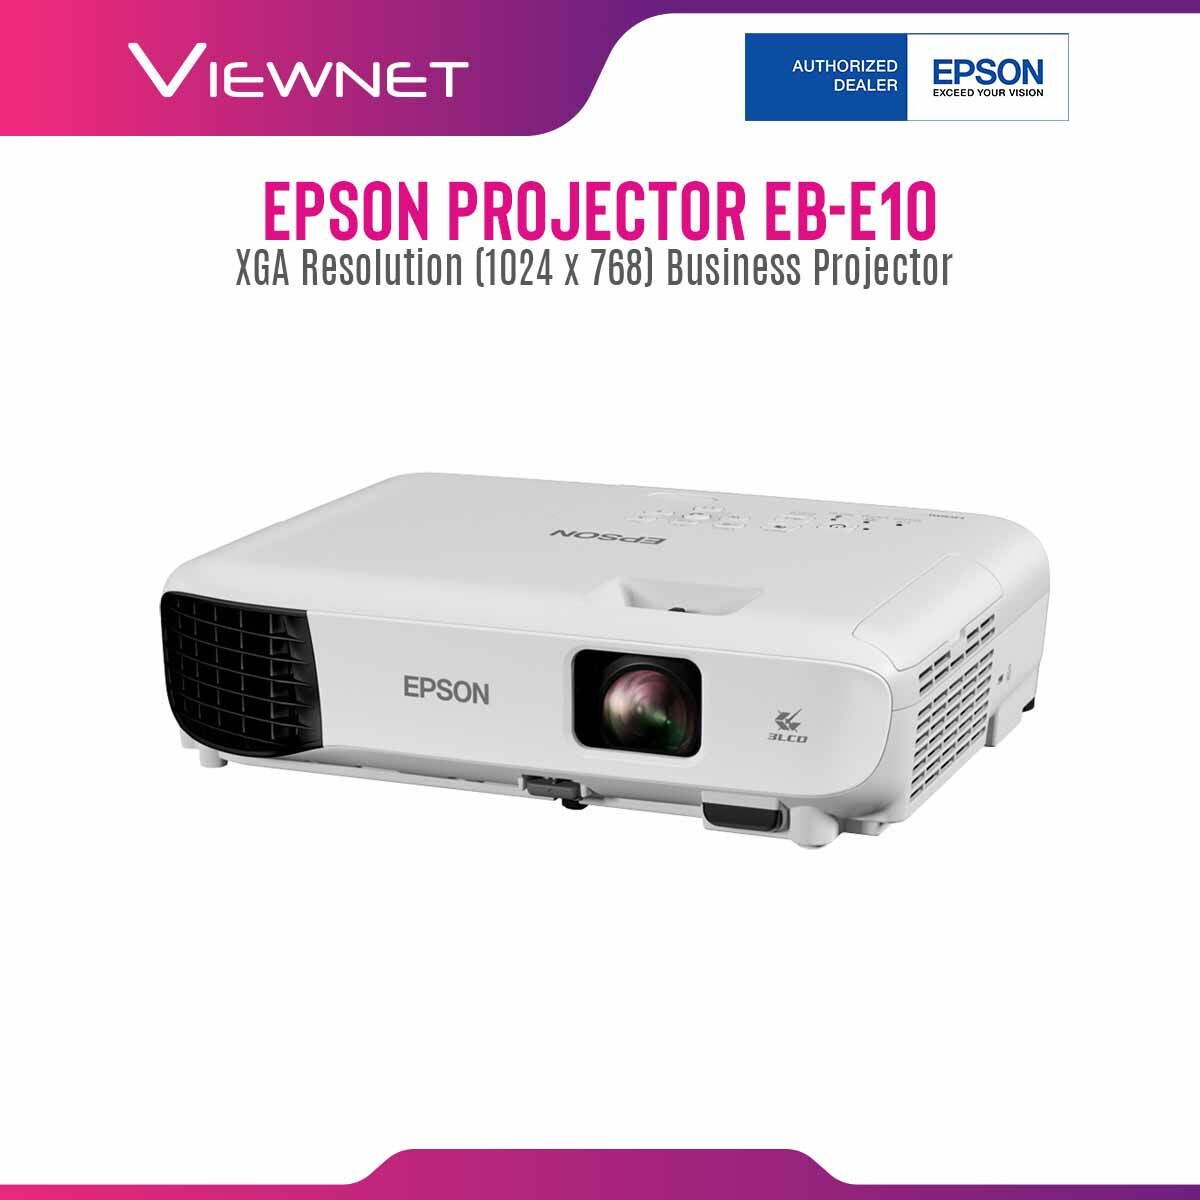 Epson Projector EB-E10 with XGA Resolution (1024 x 768), 3600 Lumens, 12000 Hours Lamp Life in Eco Mode